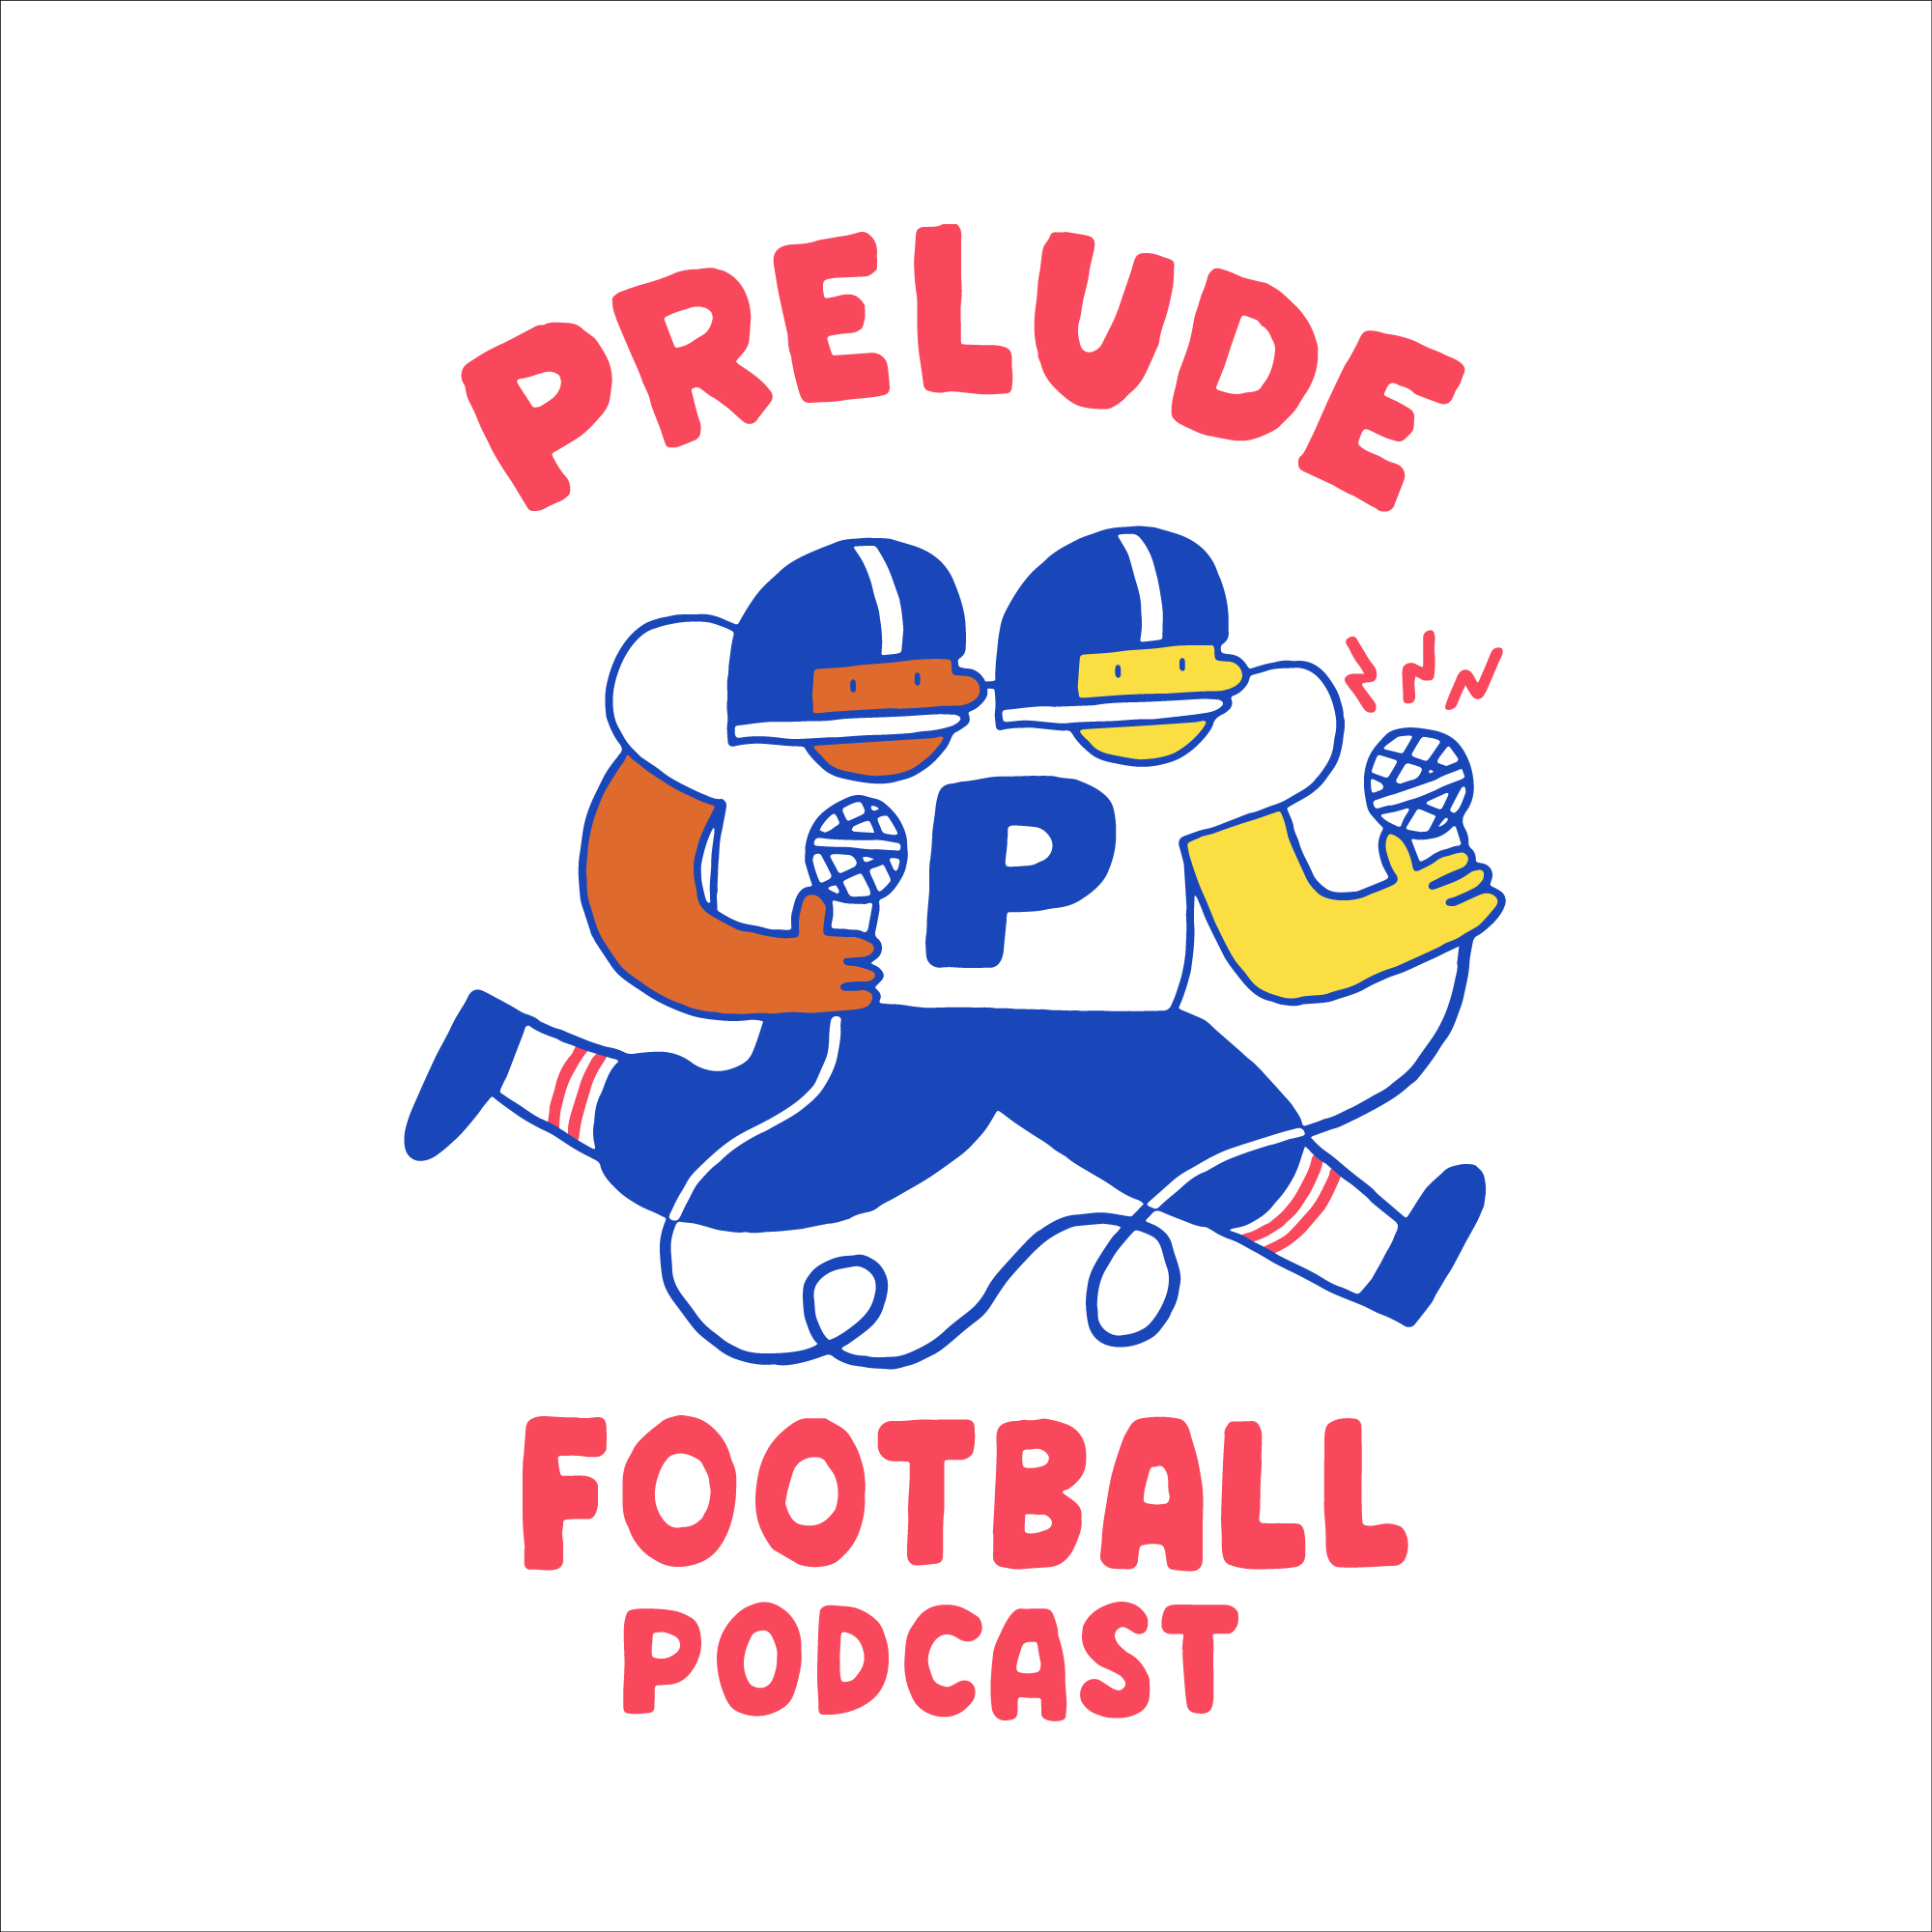 PRELUDE FOOTBALL Podcast</br></br>